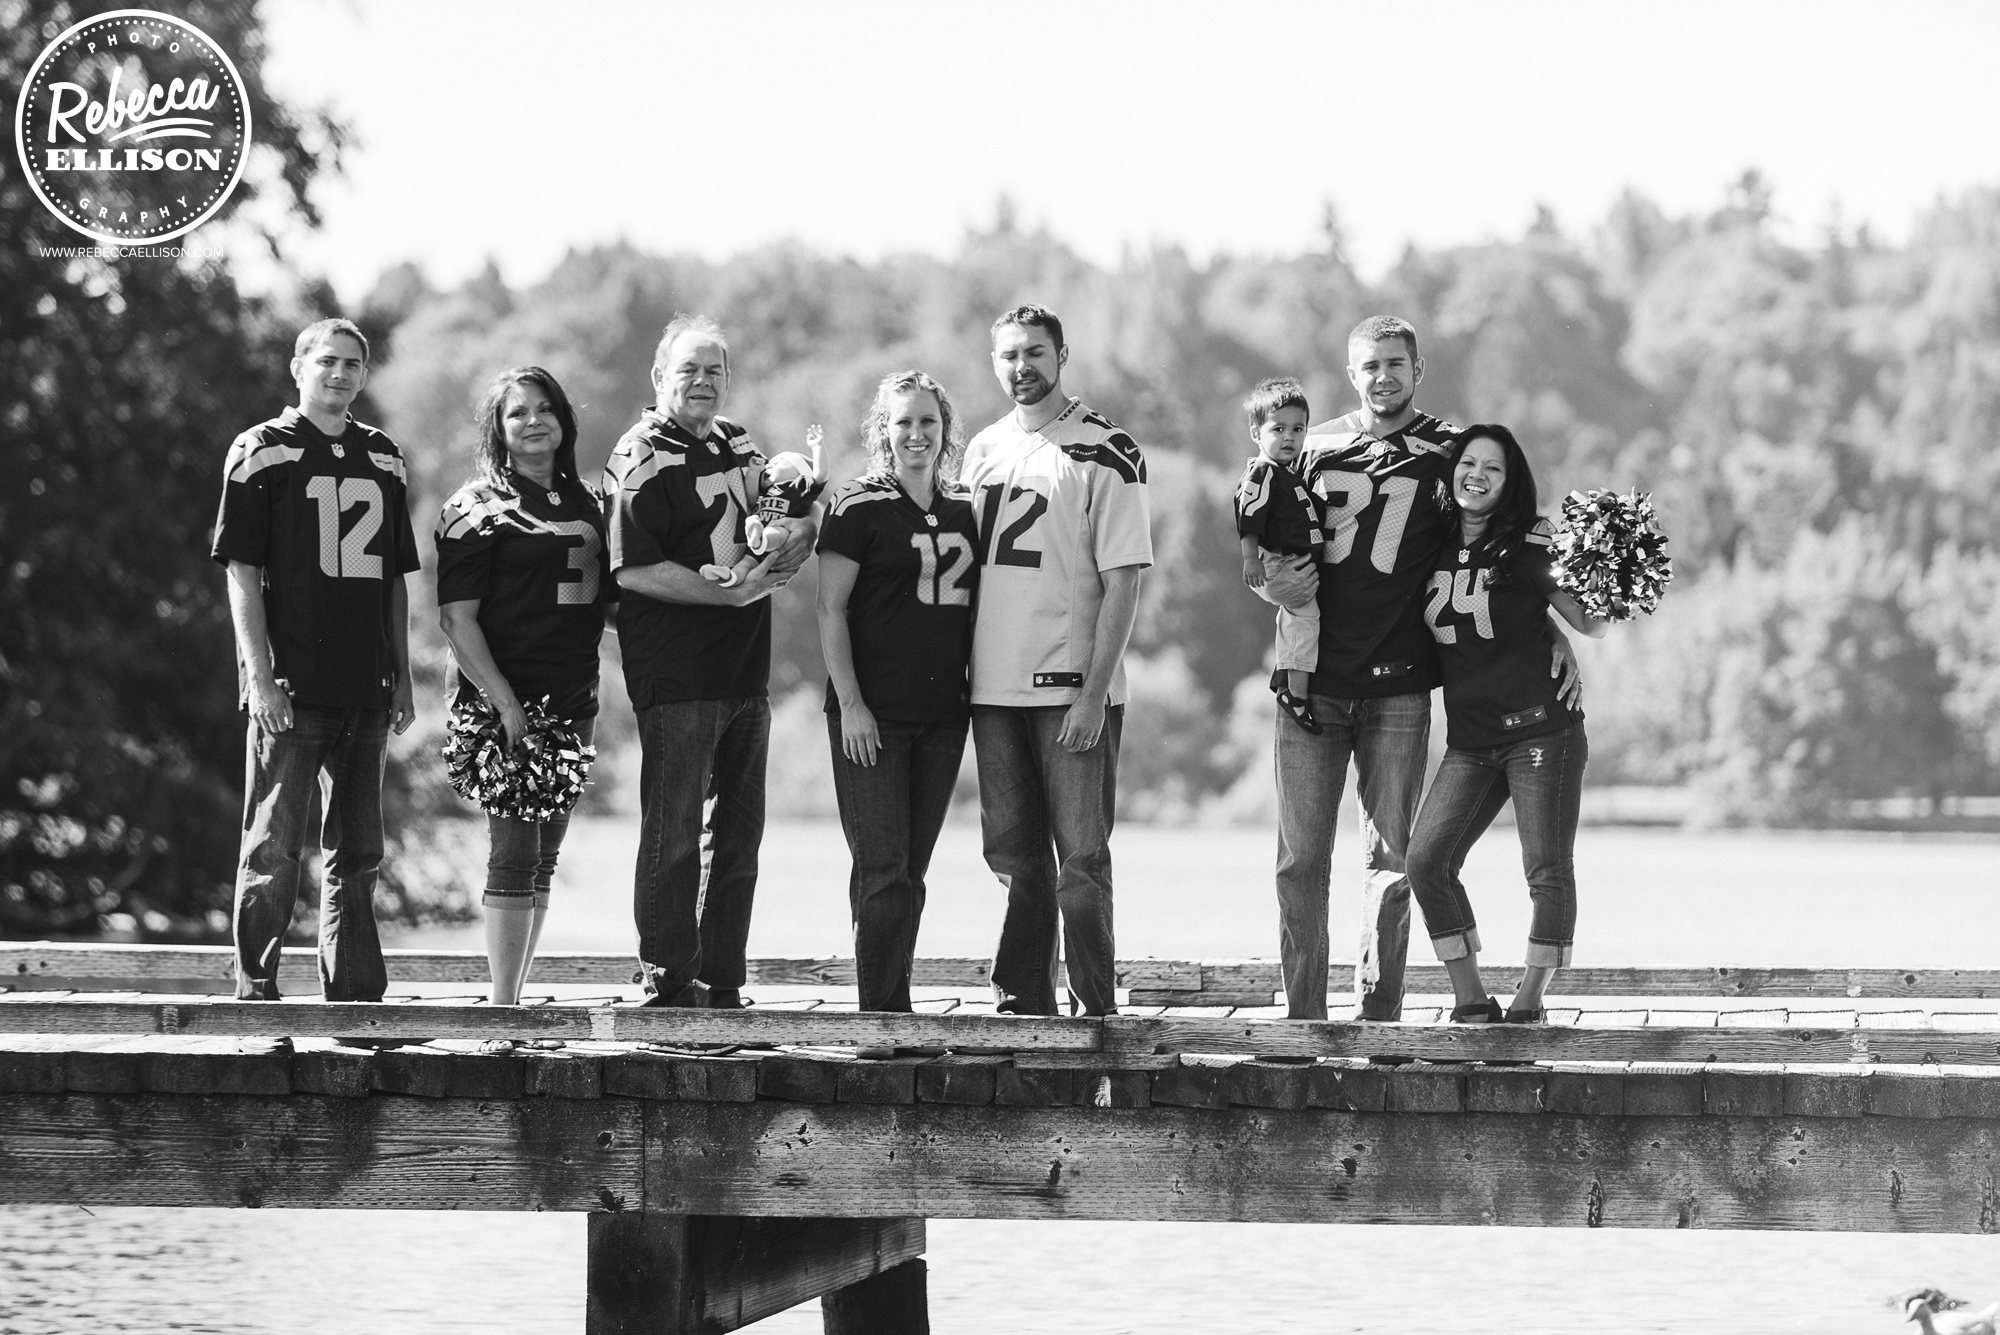 Team Spirit extended family portraits featuring Seahawks jerseys at Greenlake park in Seattle photographed by Rebecca Ellison Photography